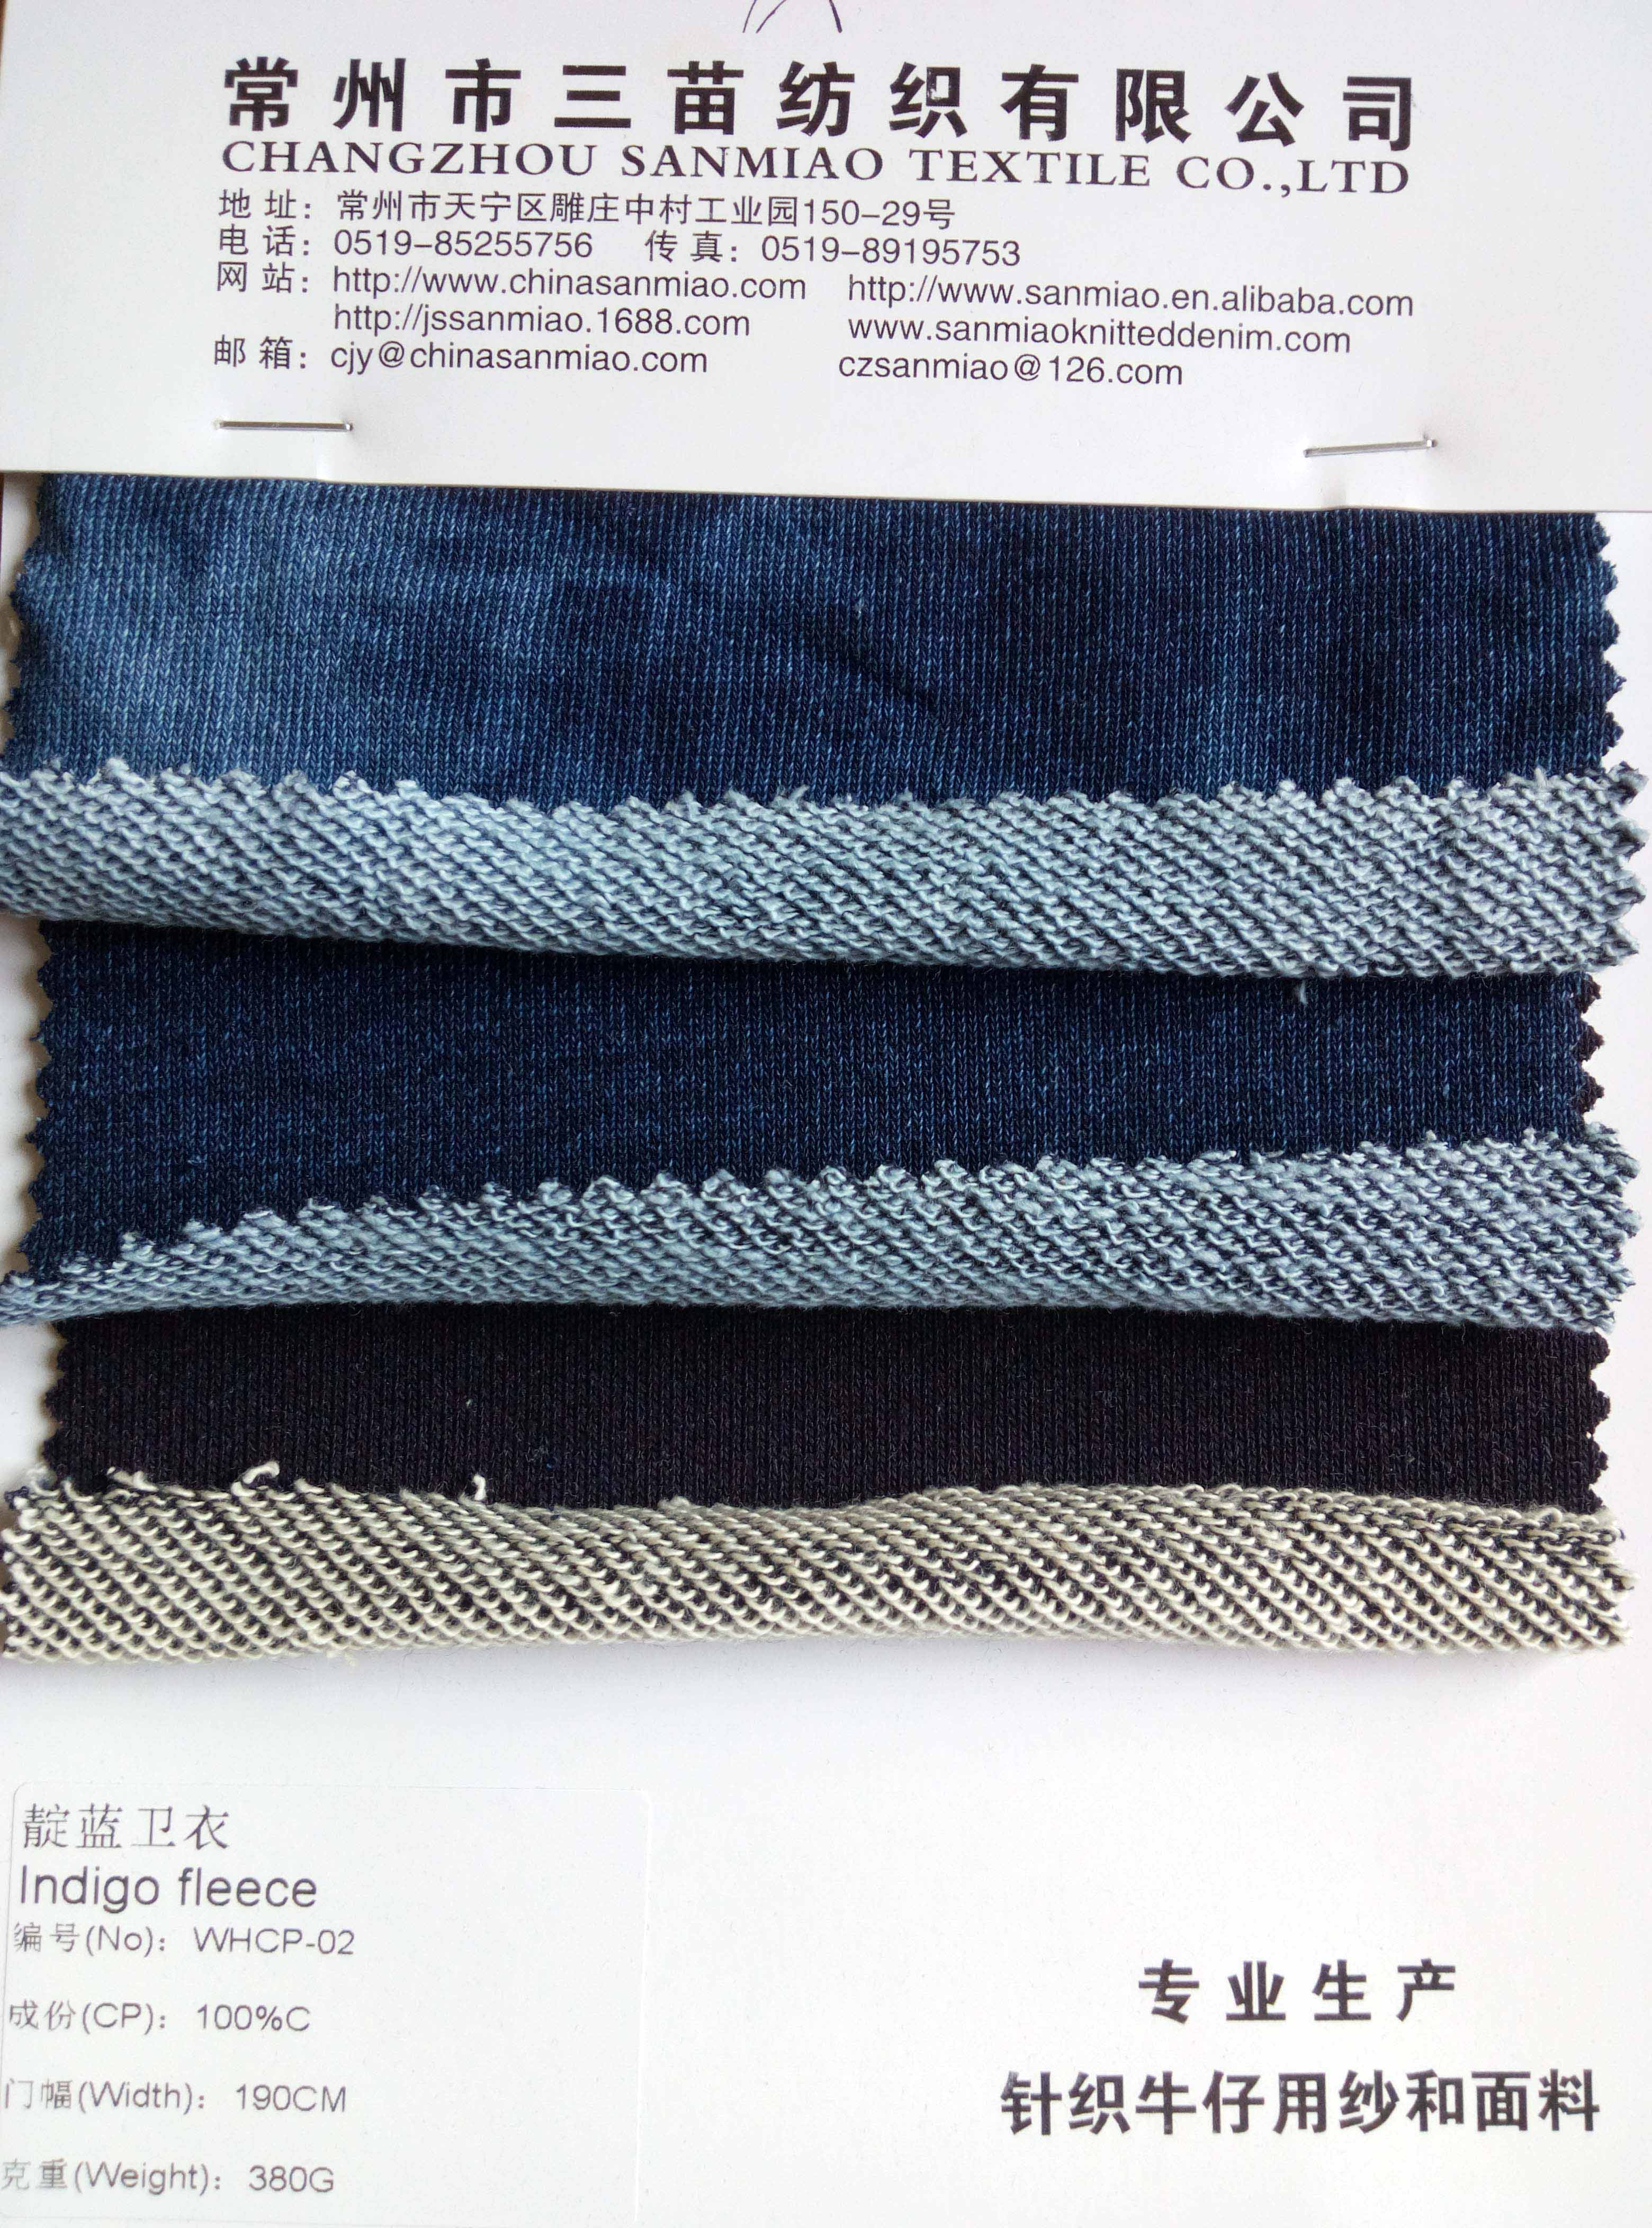 380gsm 100cotton indigo knit sweater fabric